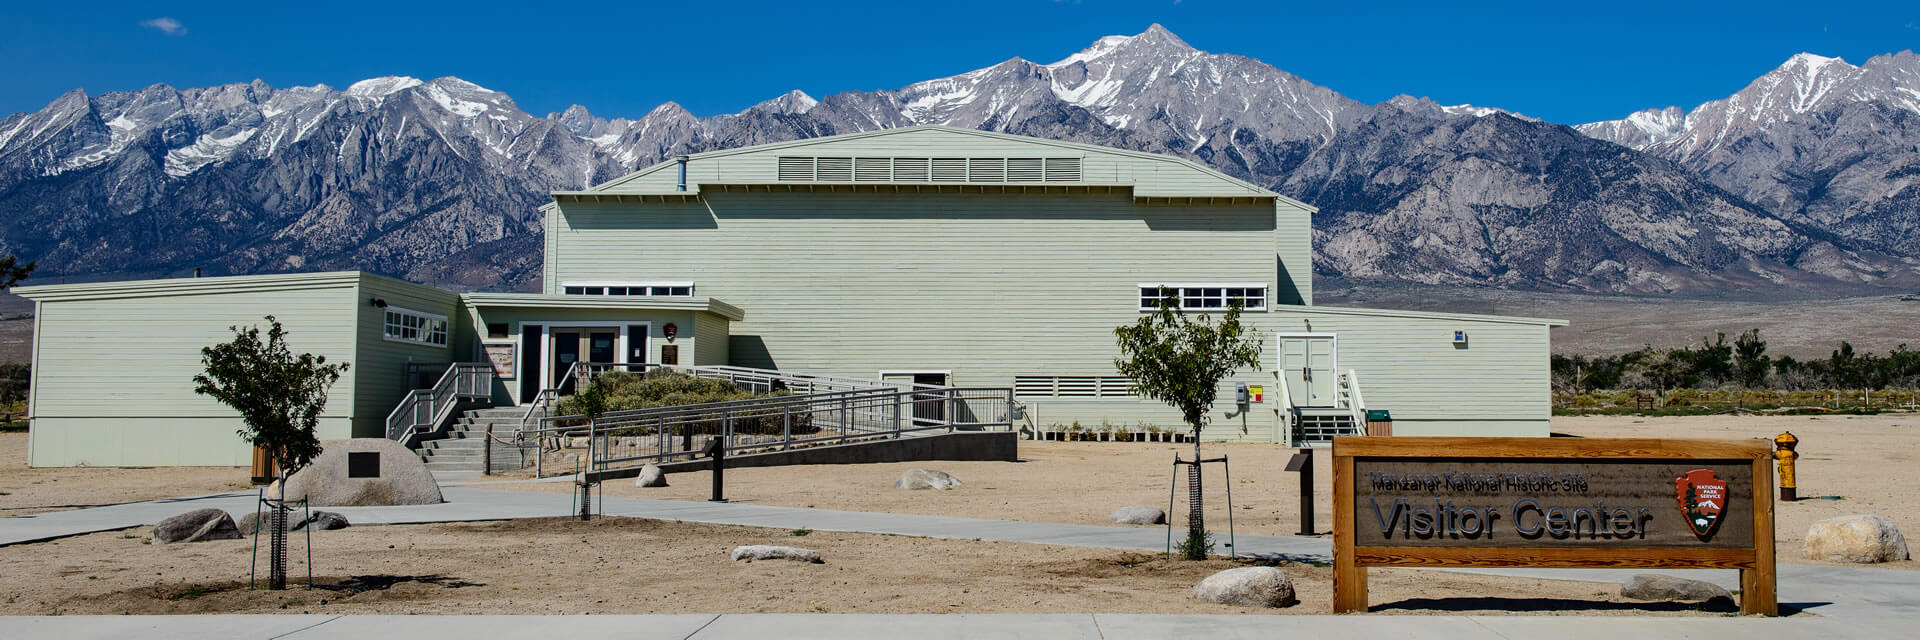 Manzanar visitor center